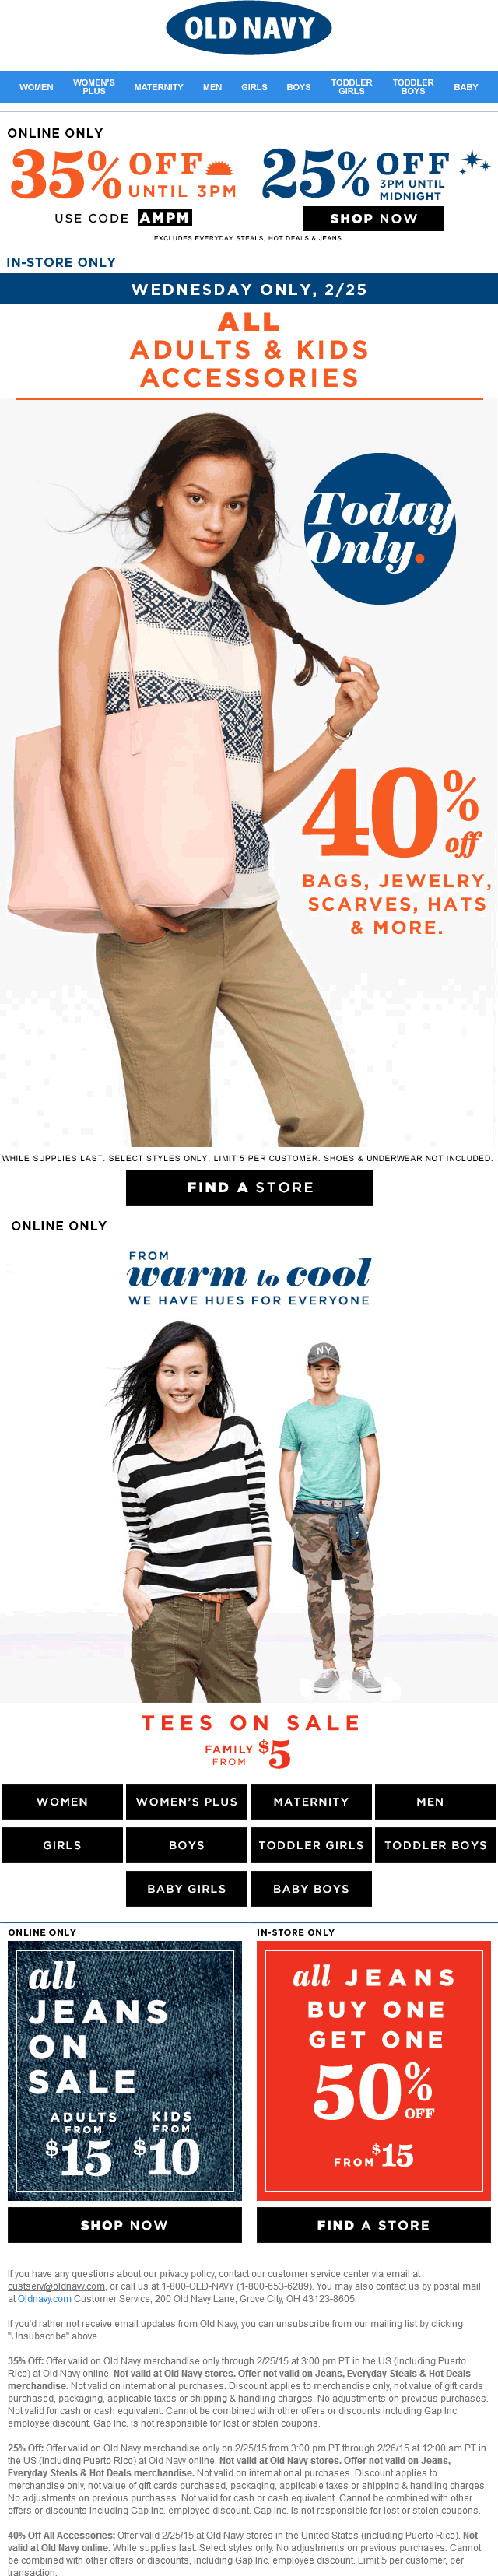 Old Navy Coupon February 2018 40% off accessories today at Old Navy, or 35% off online via promo code AMPM